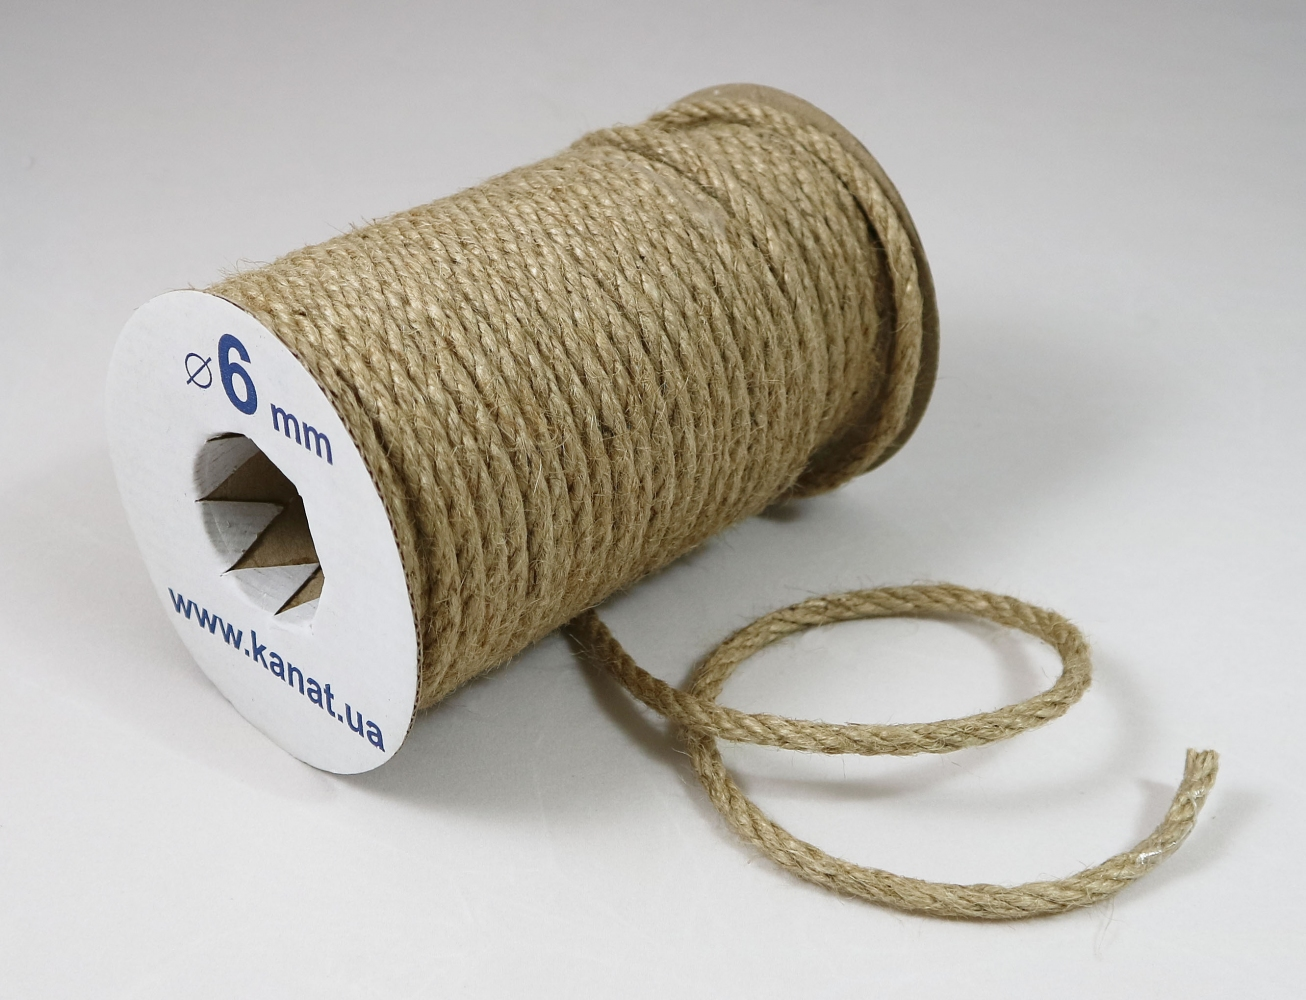 Jute rope Ø 6mm, 25 meters - 1